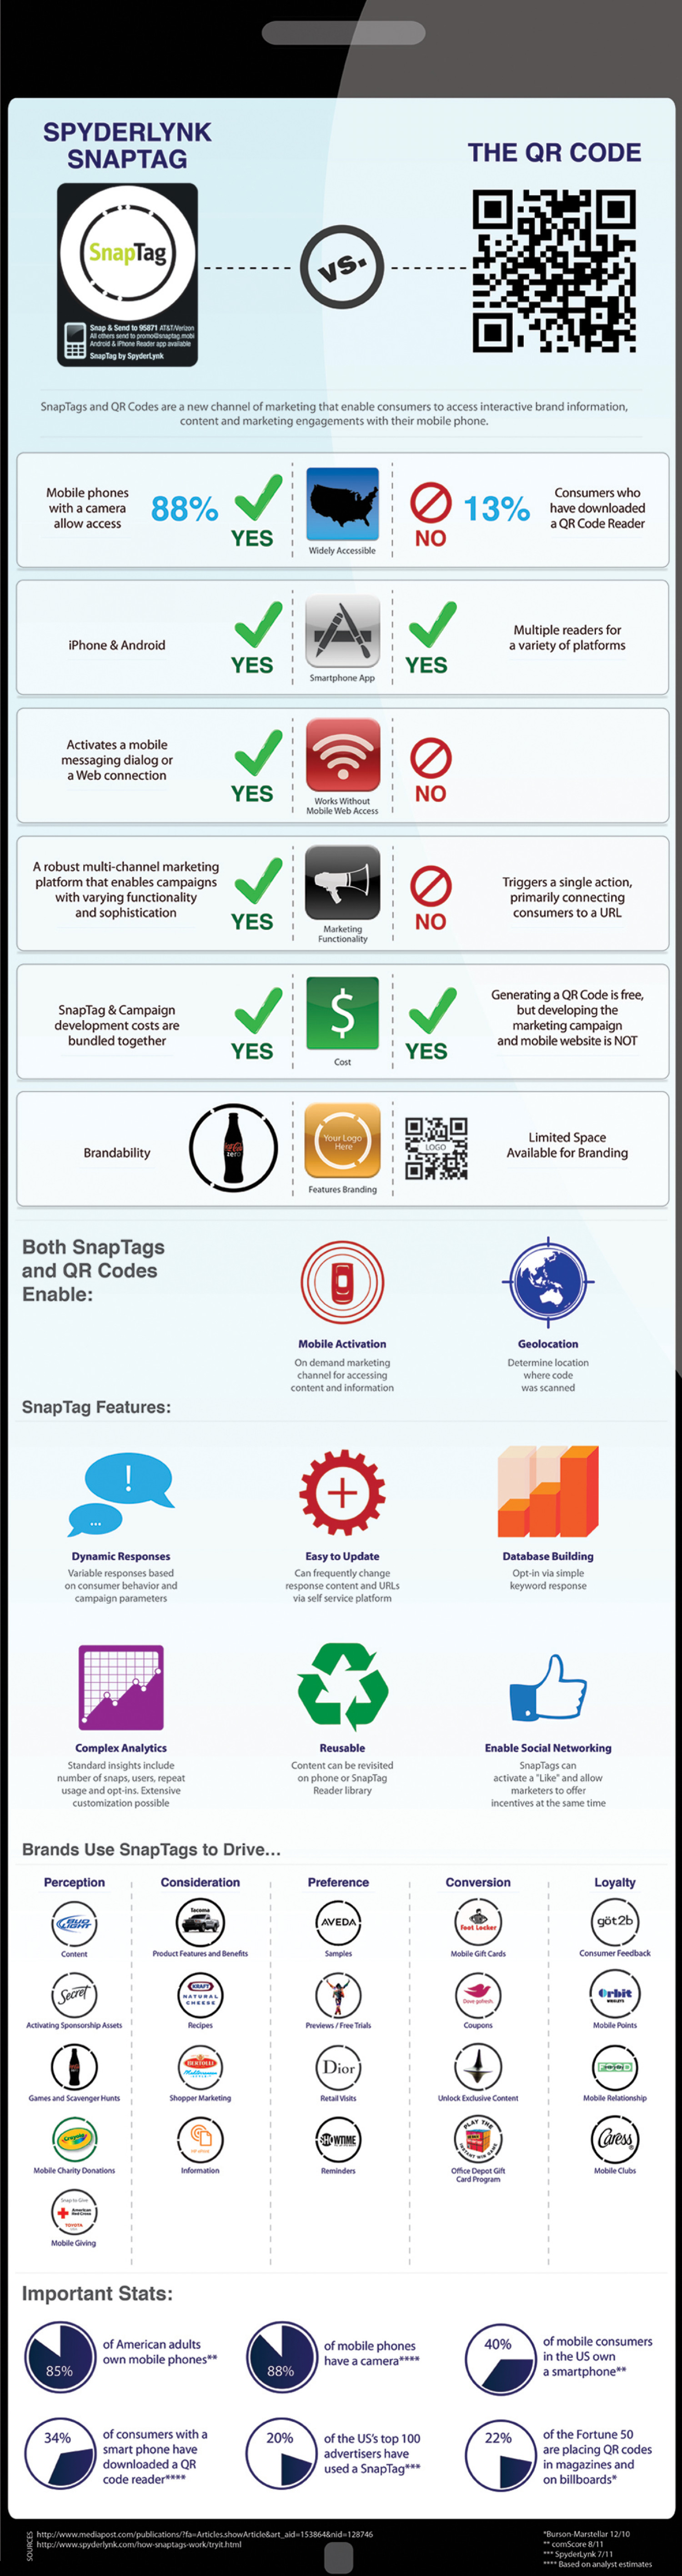 QR Codes vs. SpyderLynk SnapTags Infographic